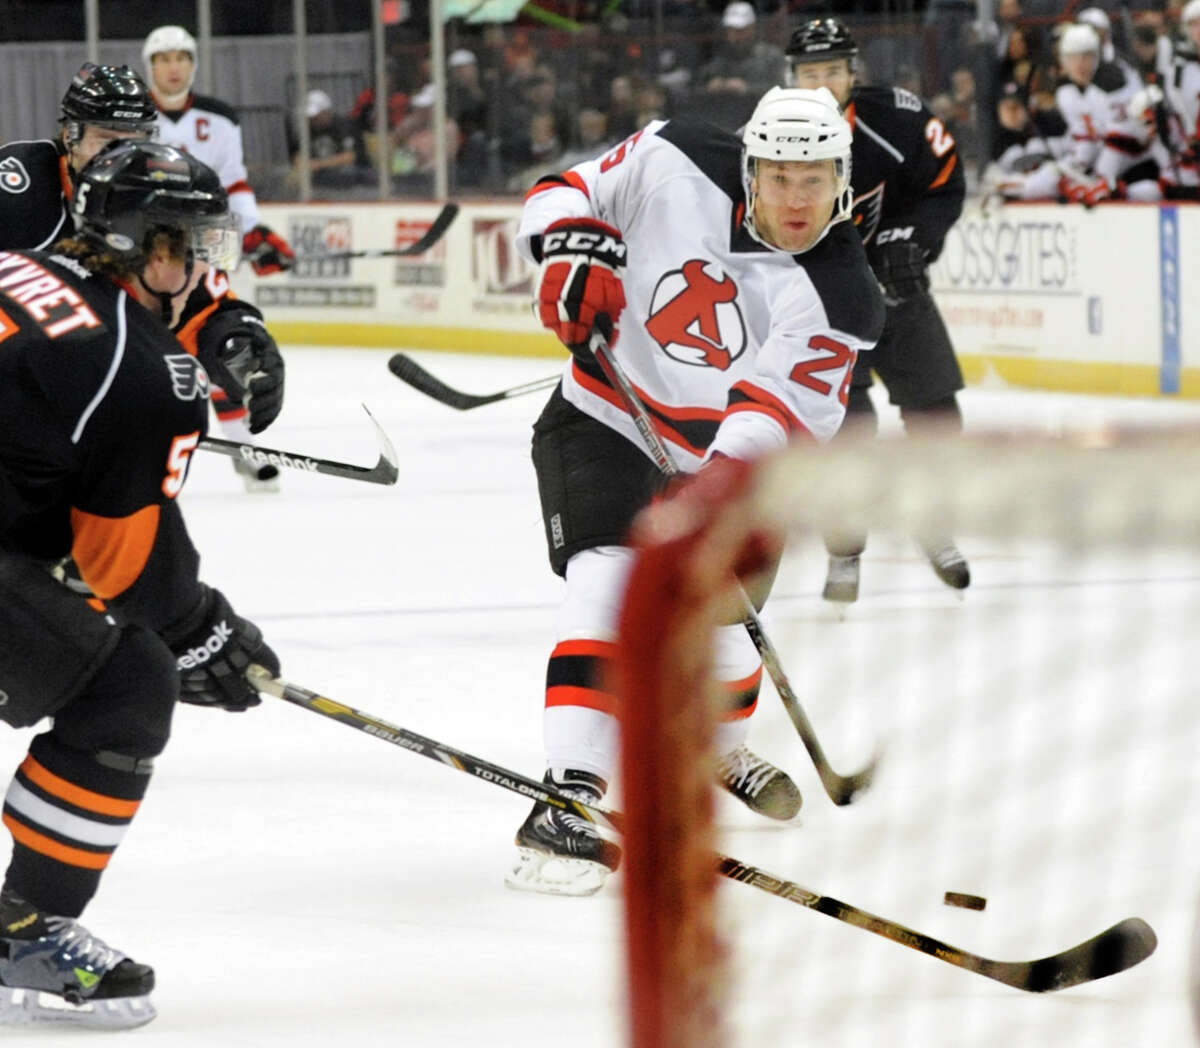 Devils' Mike Hoeffel (26), center, shoots on net during their hockey game against the Adirondack Phantoms on Saturday, Jan. 26, 2013, at Times Union Center in Albany, N.Y. (Cindy Schultz / Times Union)